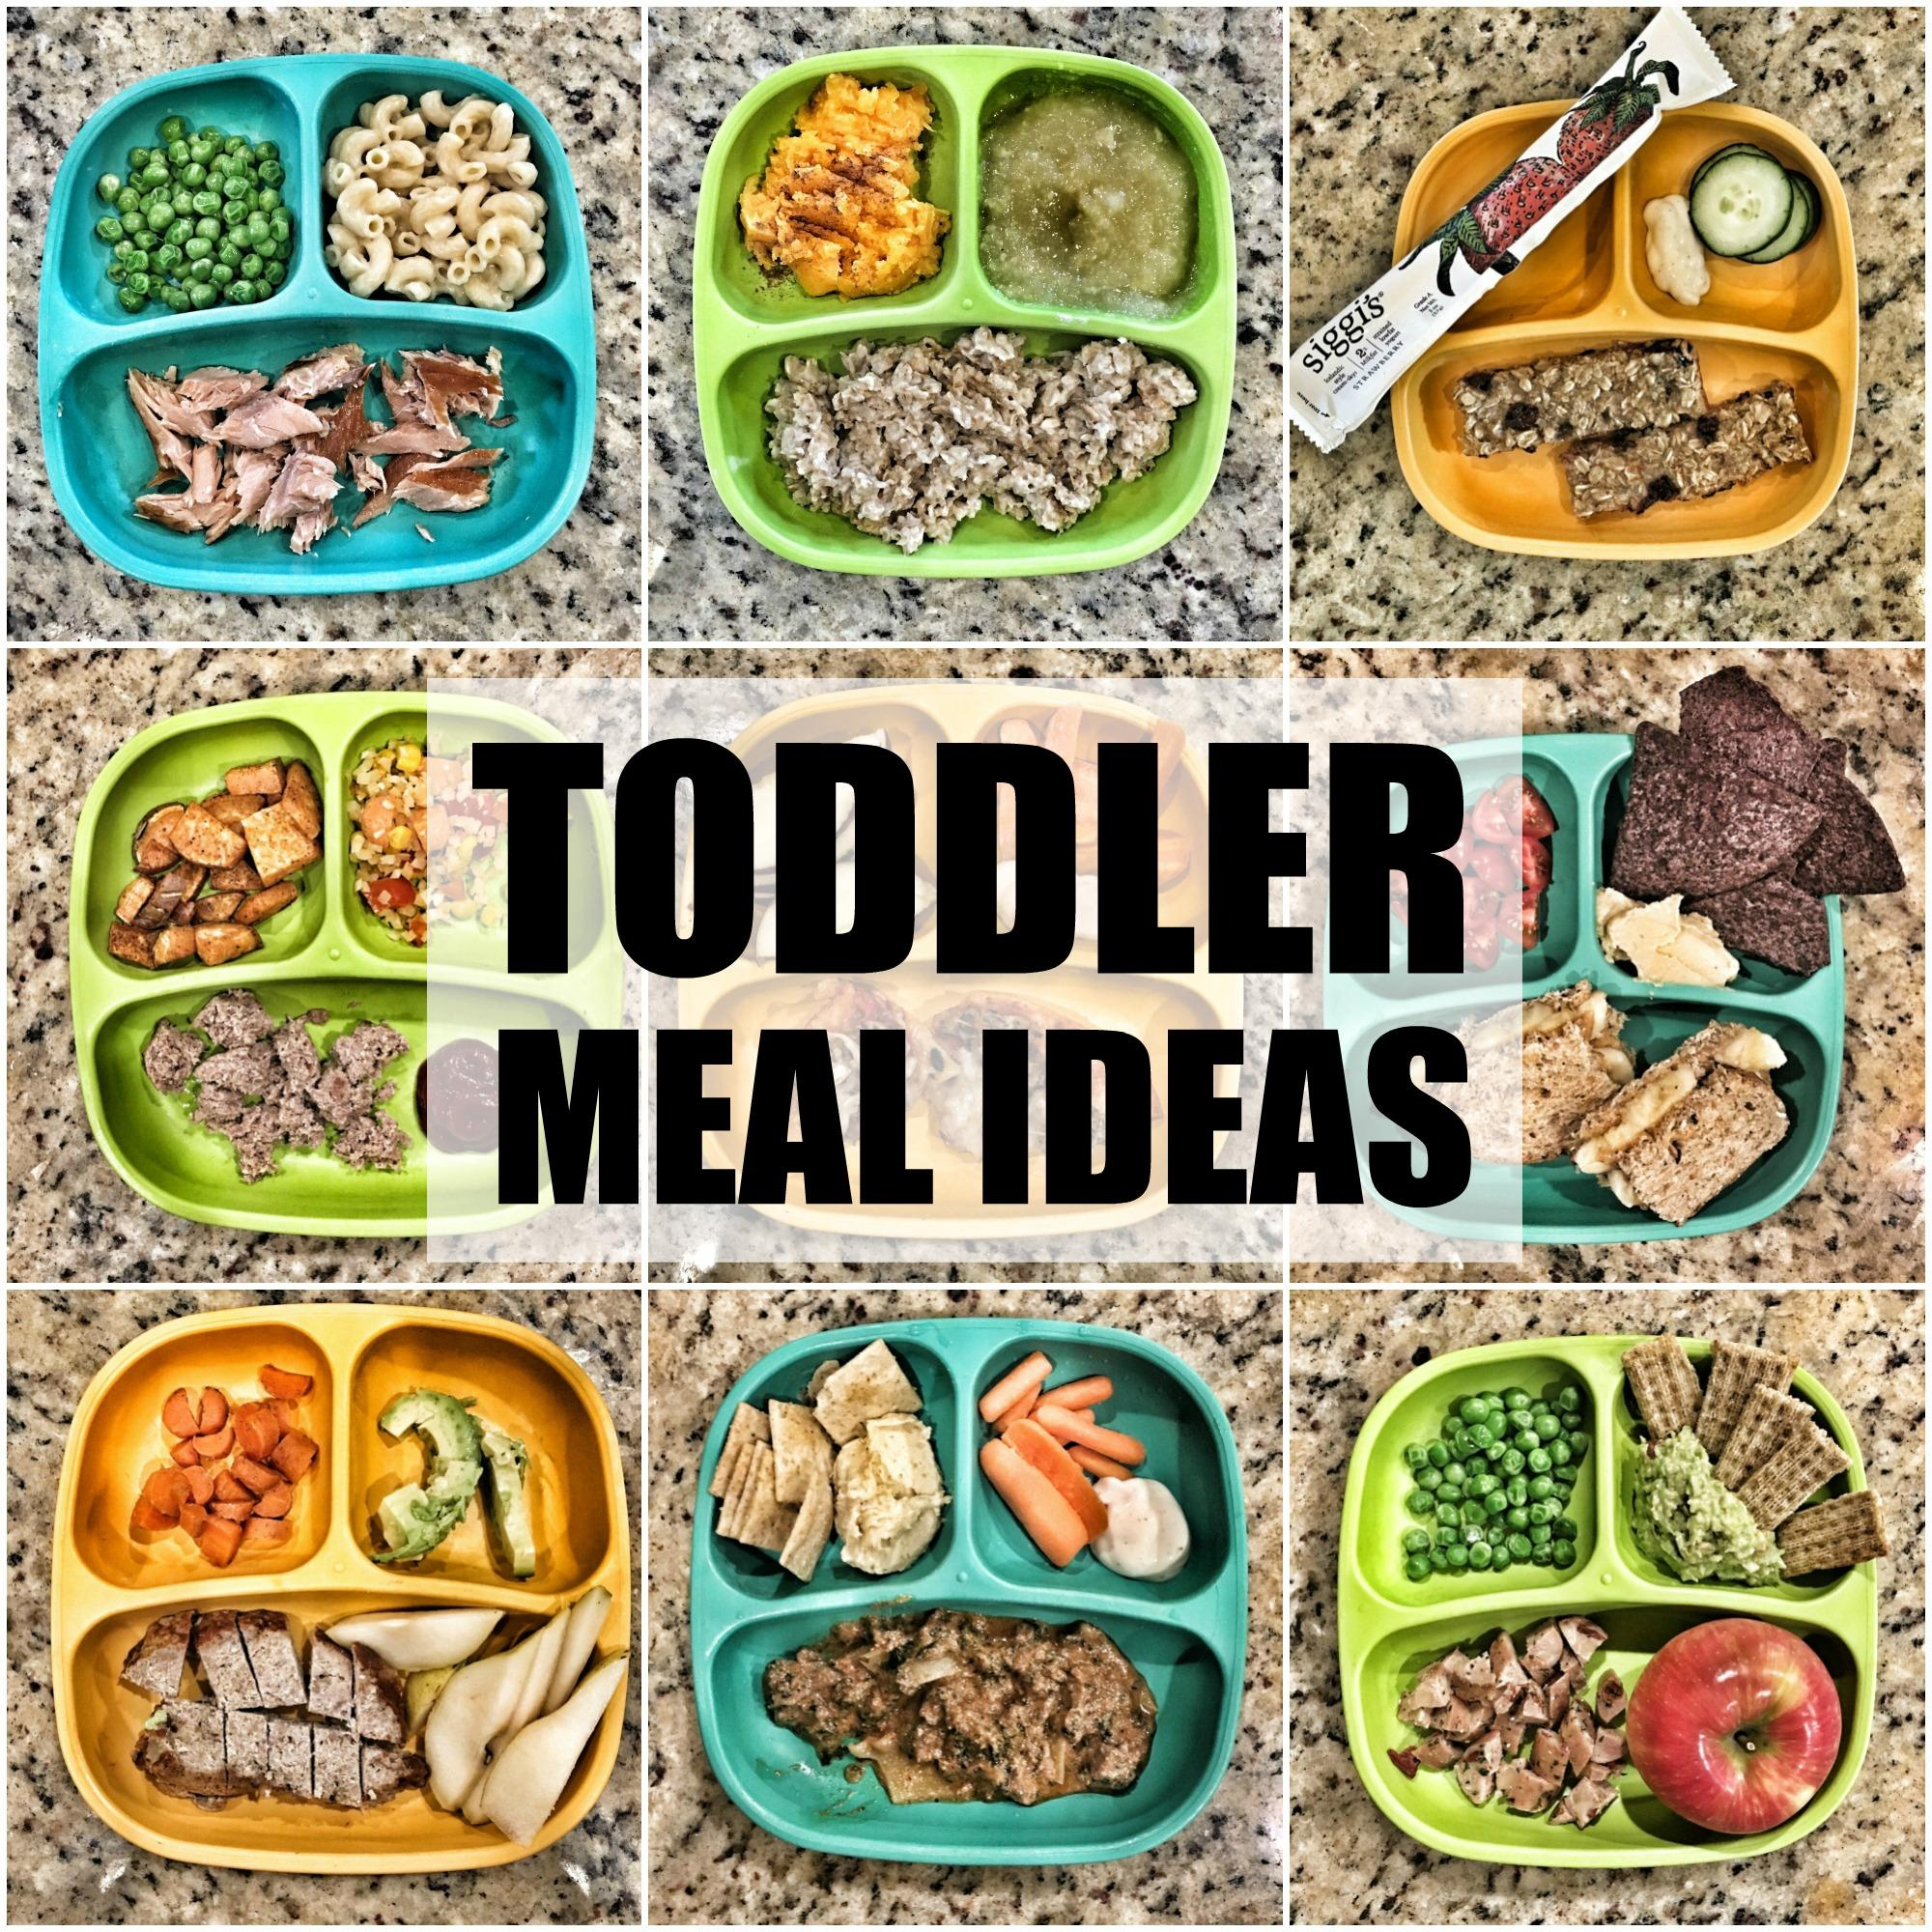 Use These Toddler Meal Ideas To Inspire Some Easy Healthy New Breakfasts Lunches And